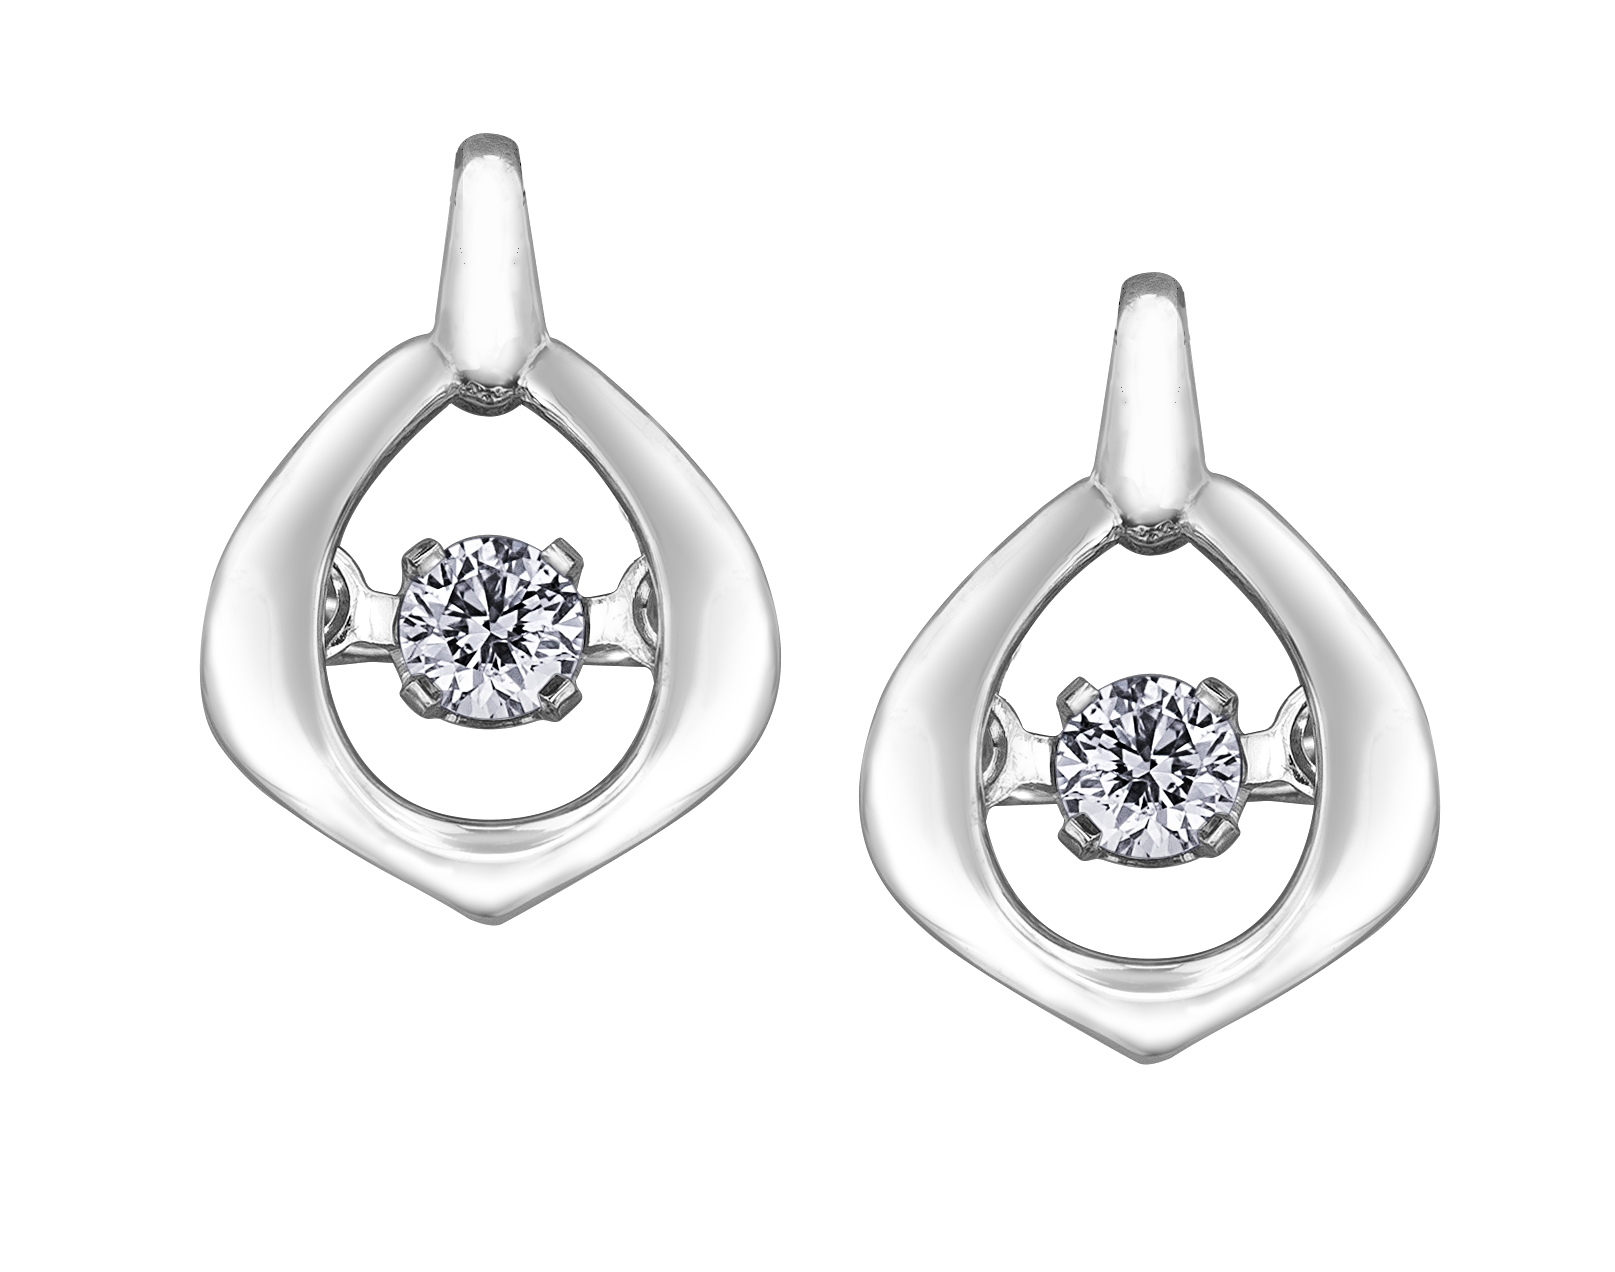 Stud earrings - 10K white Gold & Canadian diamonds T.W. 0.04 Carat